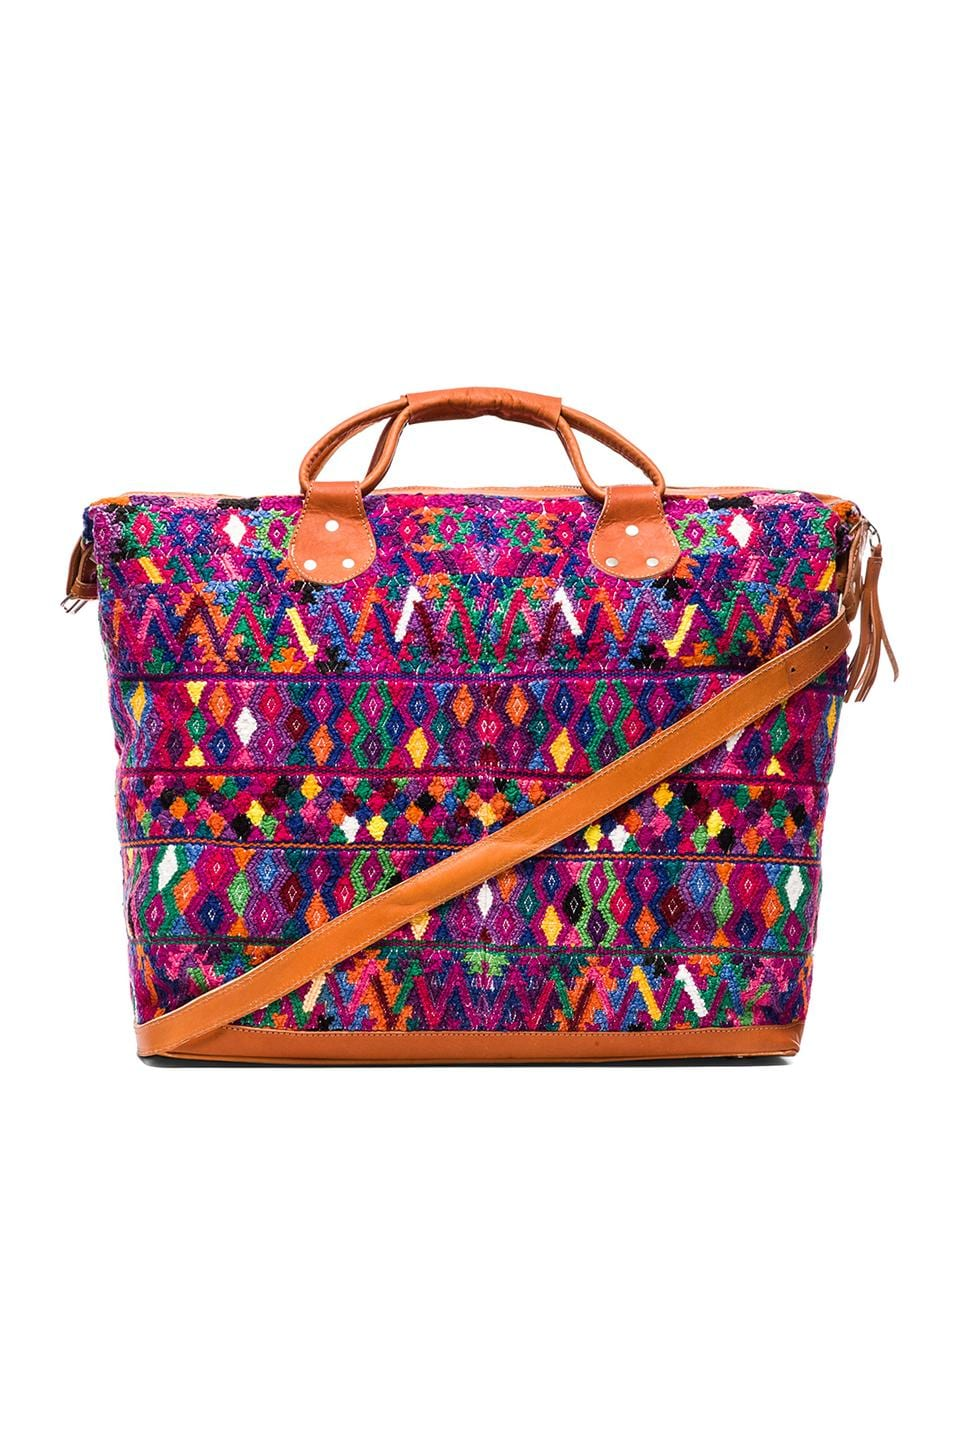 STELA 9 Allende Sunday in Pink Multi